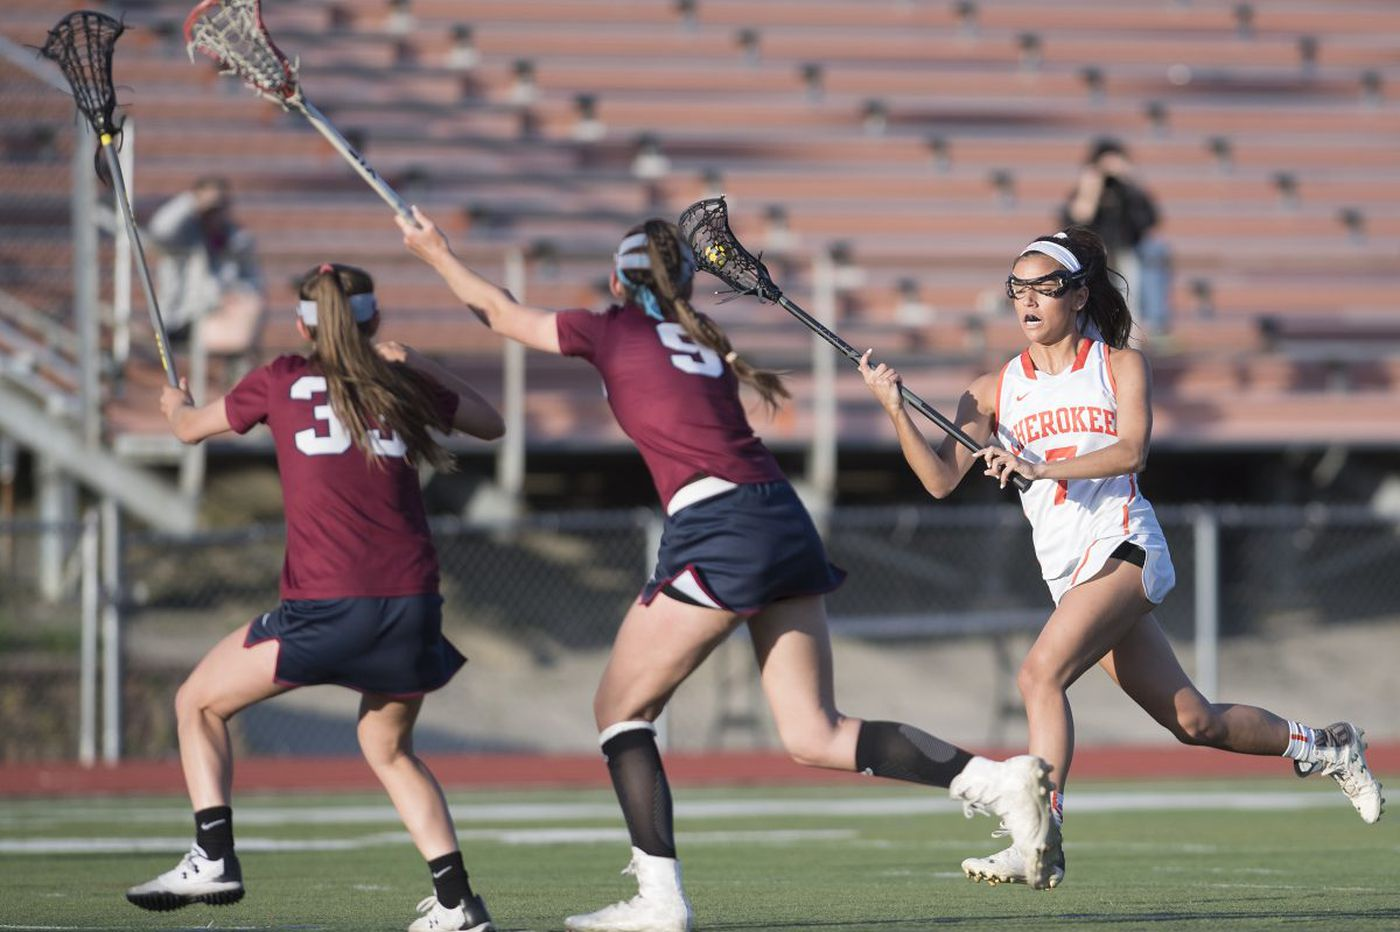 Thursday's South Jersey roundup: Cherokee moves on to South Group 4 semifinals